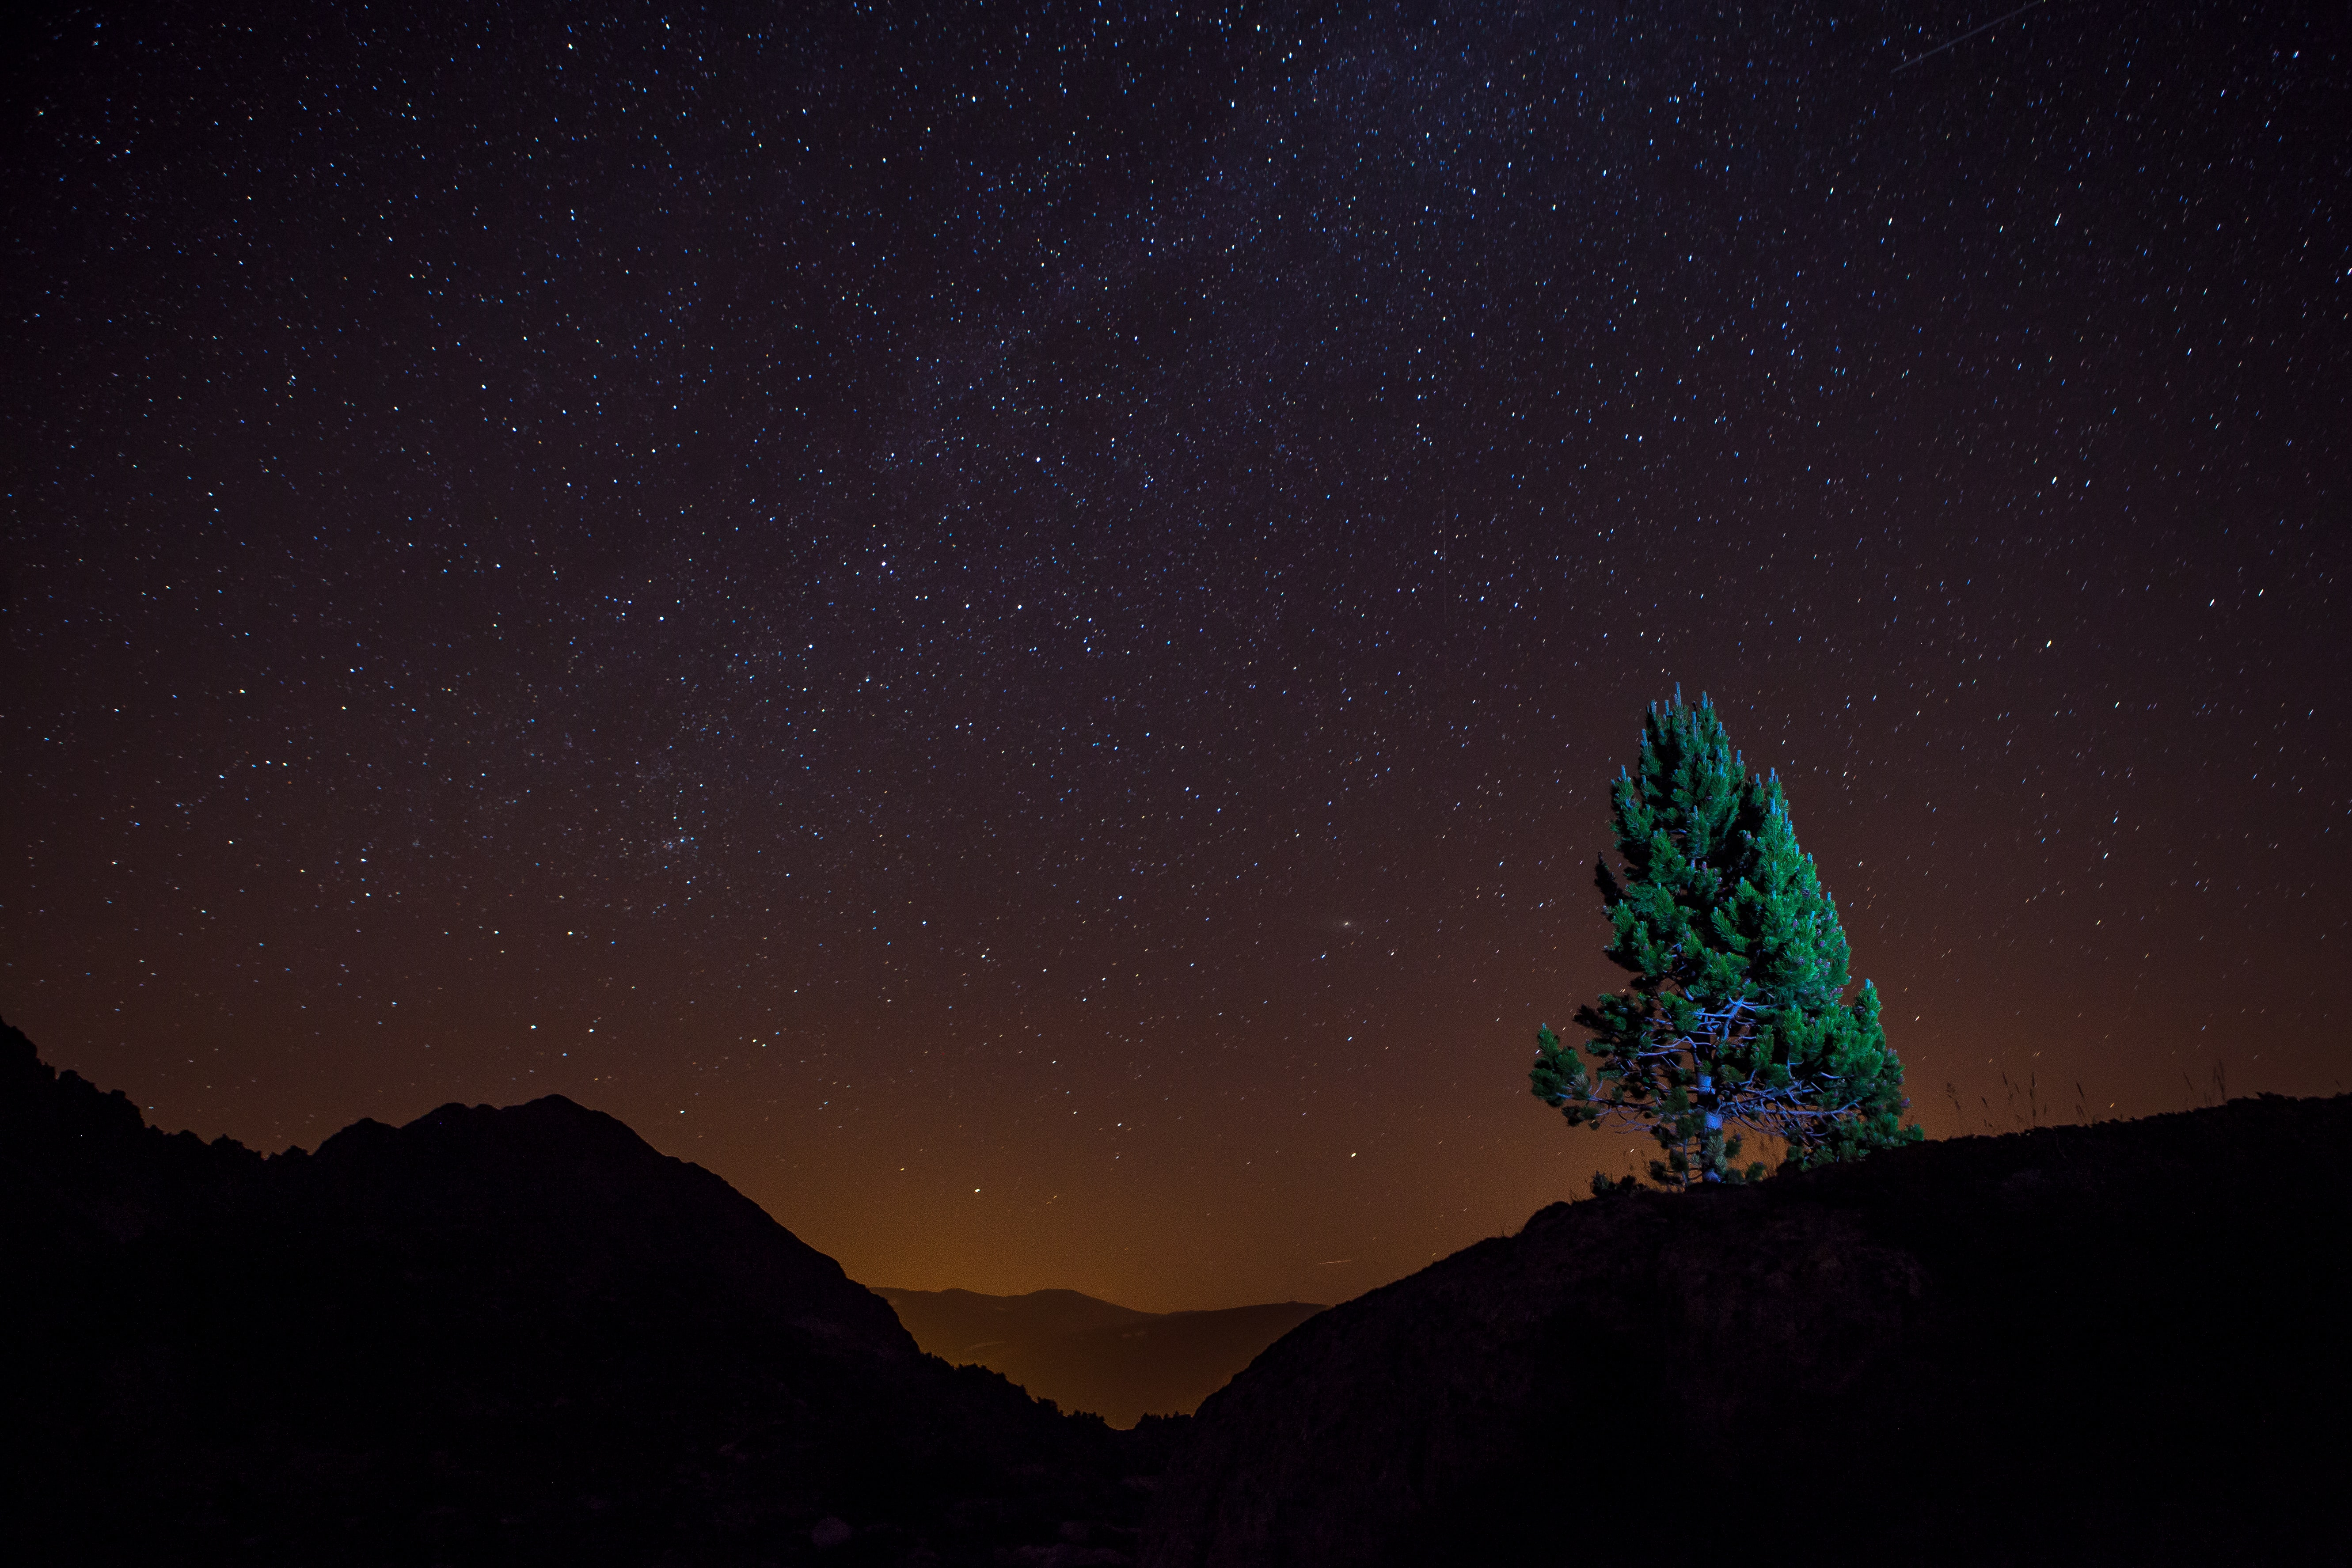 tree on top of hill under starry sky